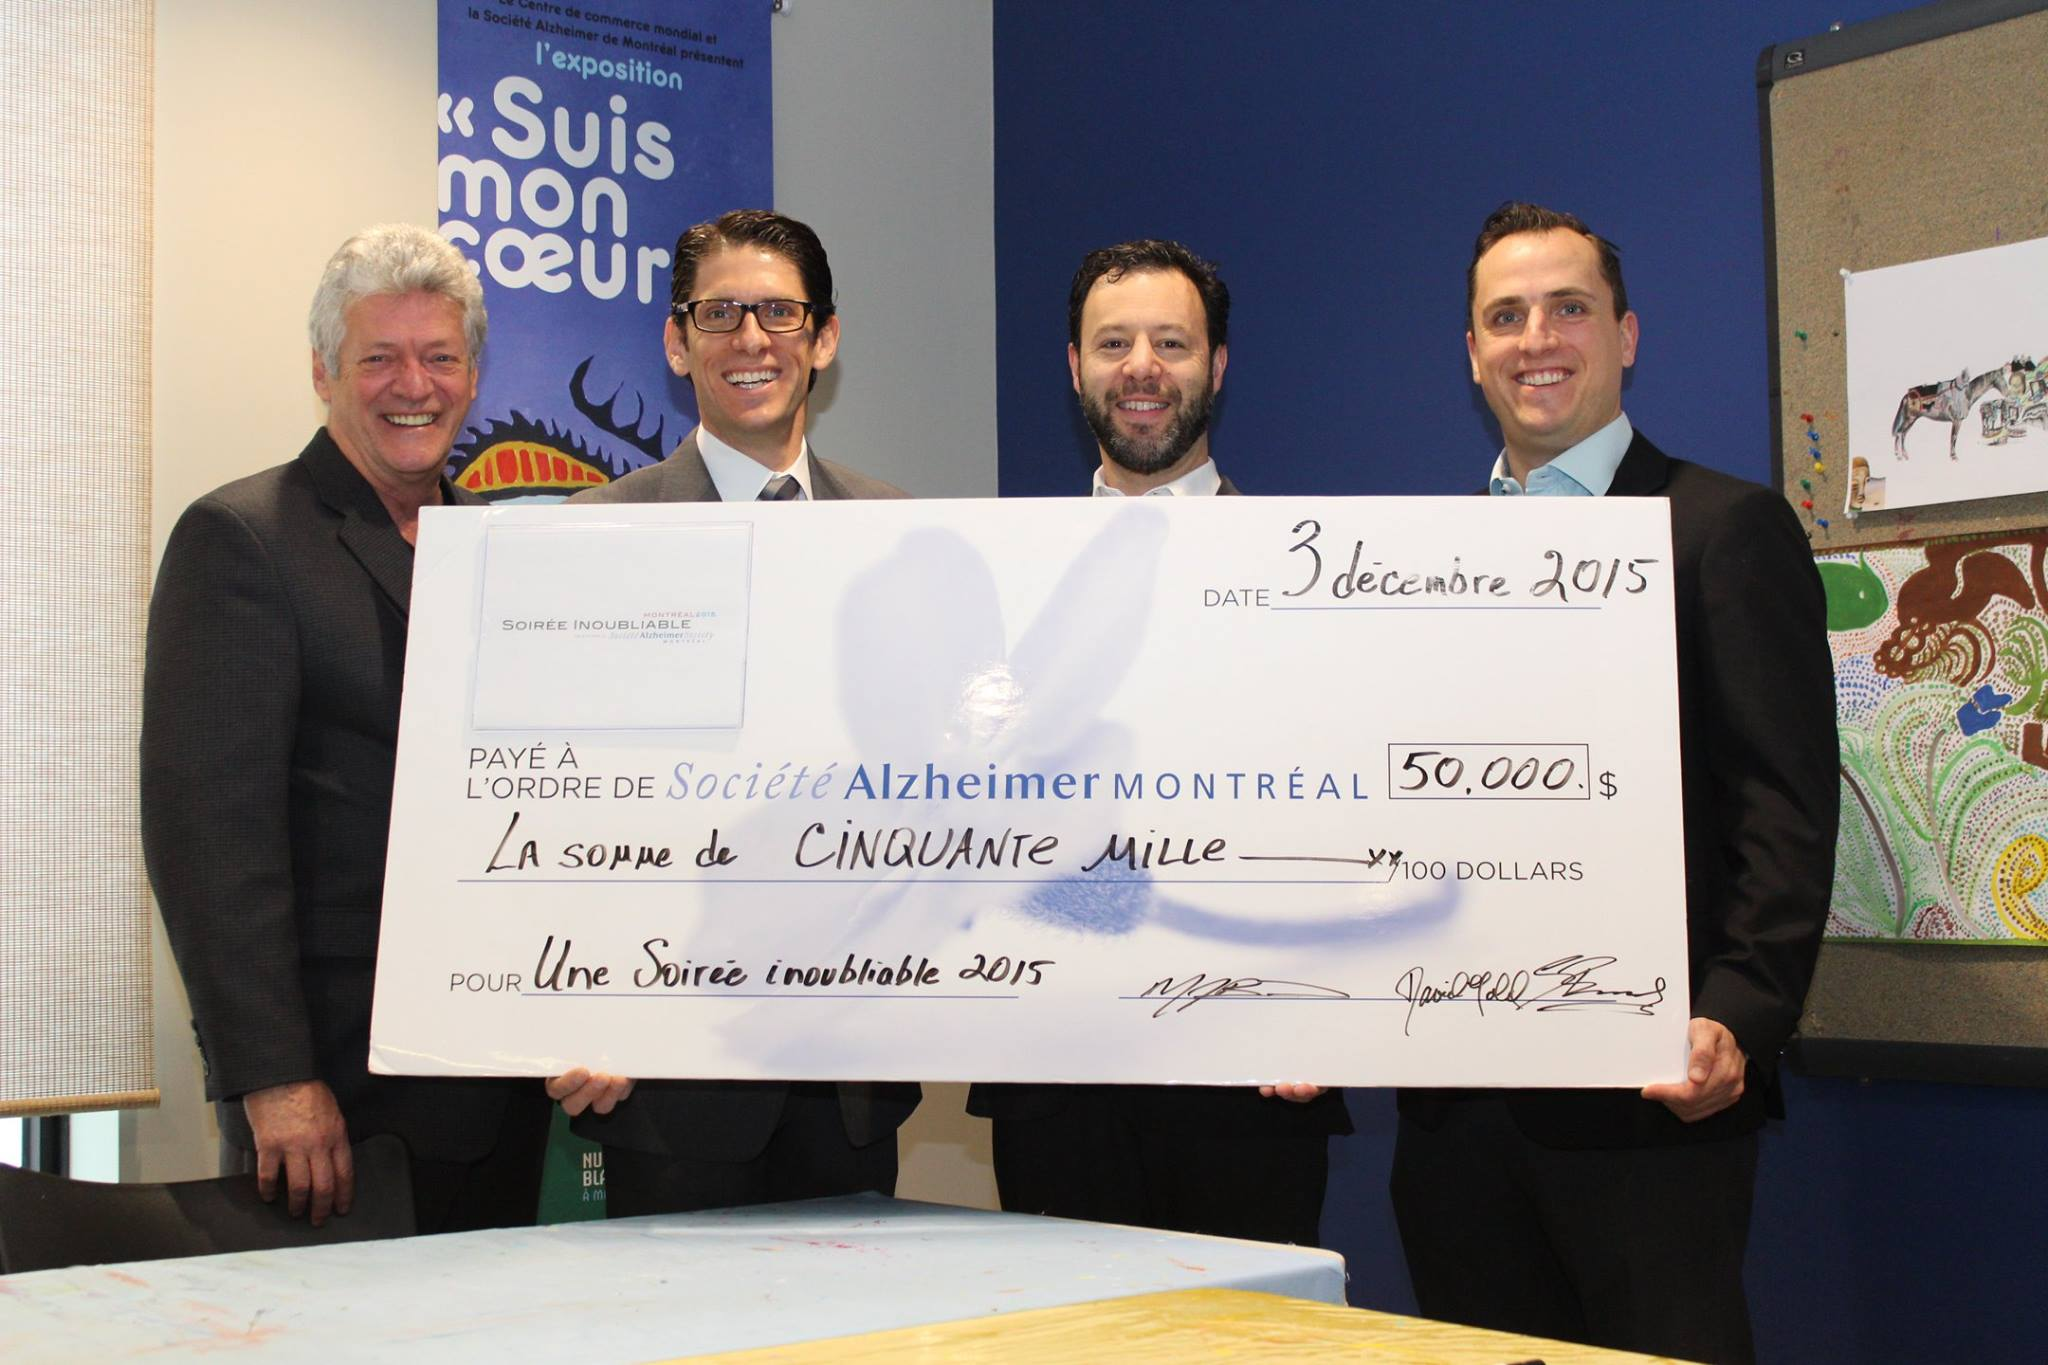 Big cheque for Alzheimer's